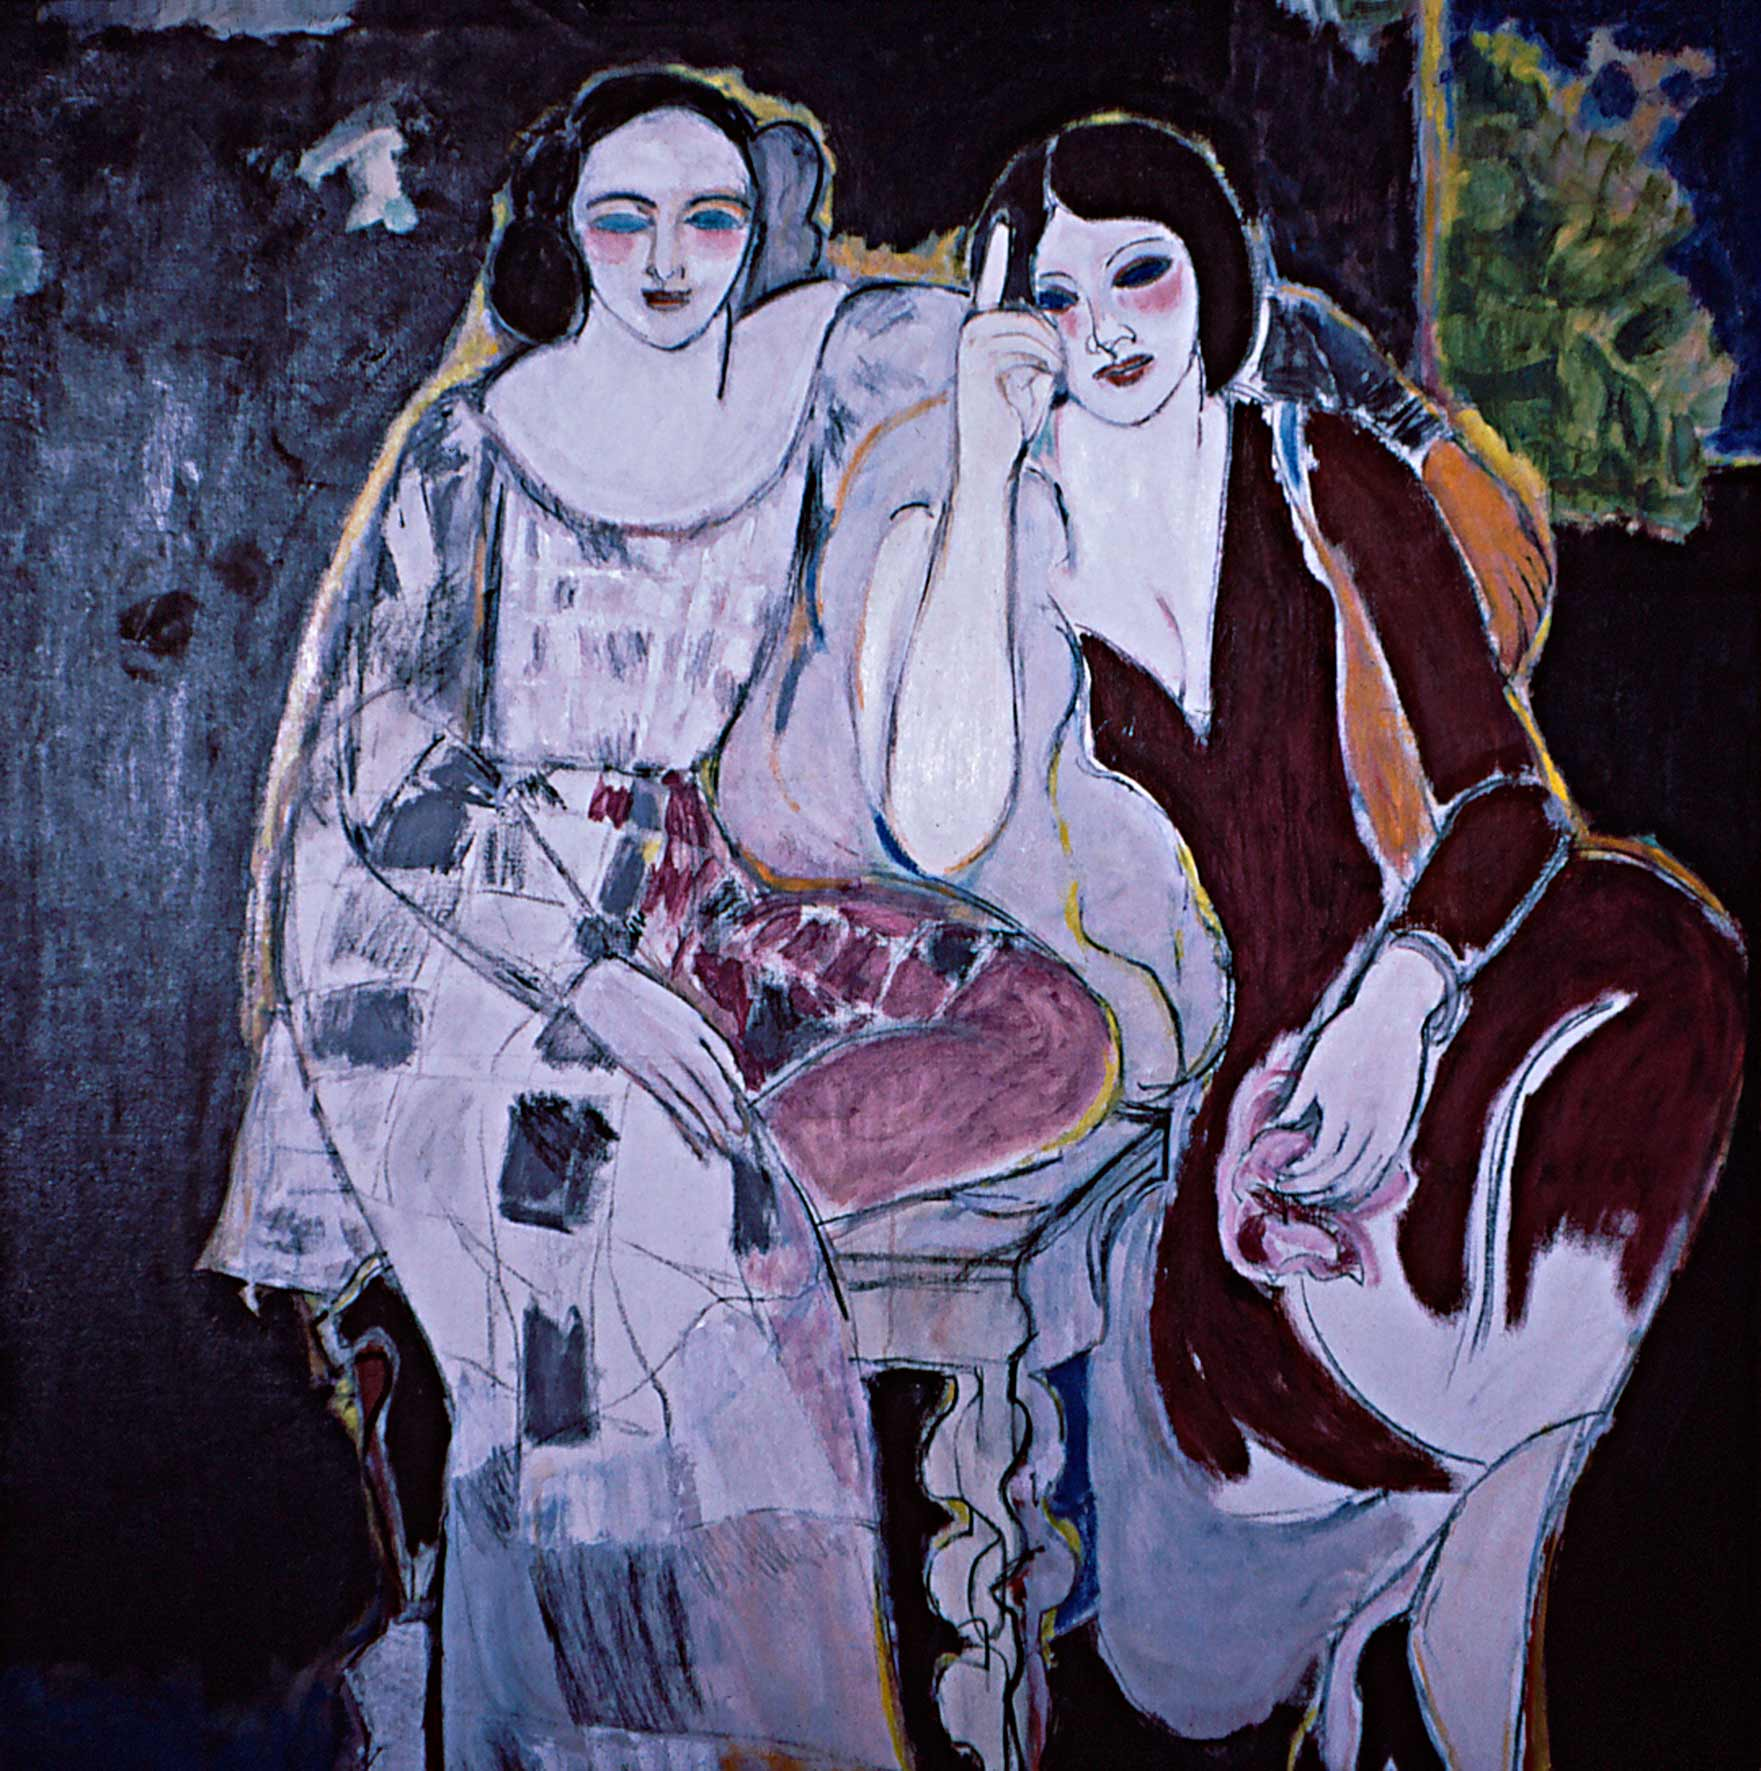 Two Sisters by Ethel Fisher, 1964, oil on linen, 44 x 42 inches, twentieth century figure painting.